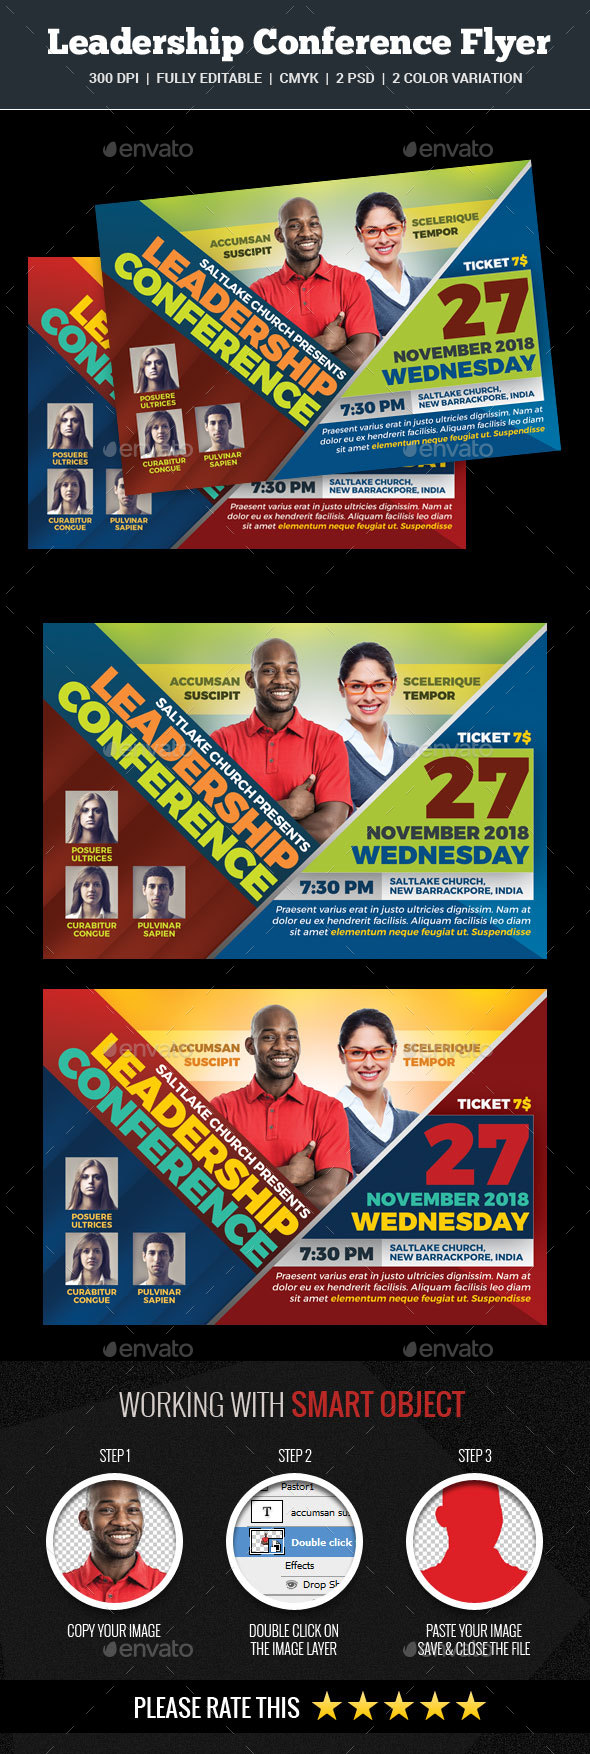 Leadership Conference Flyer - Church Flyers